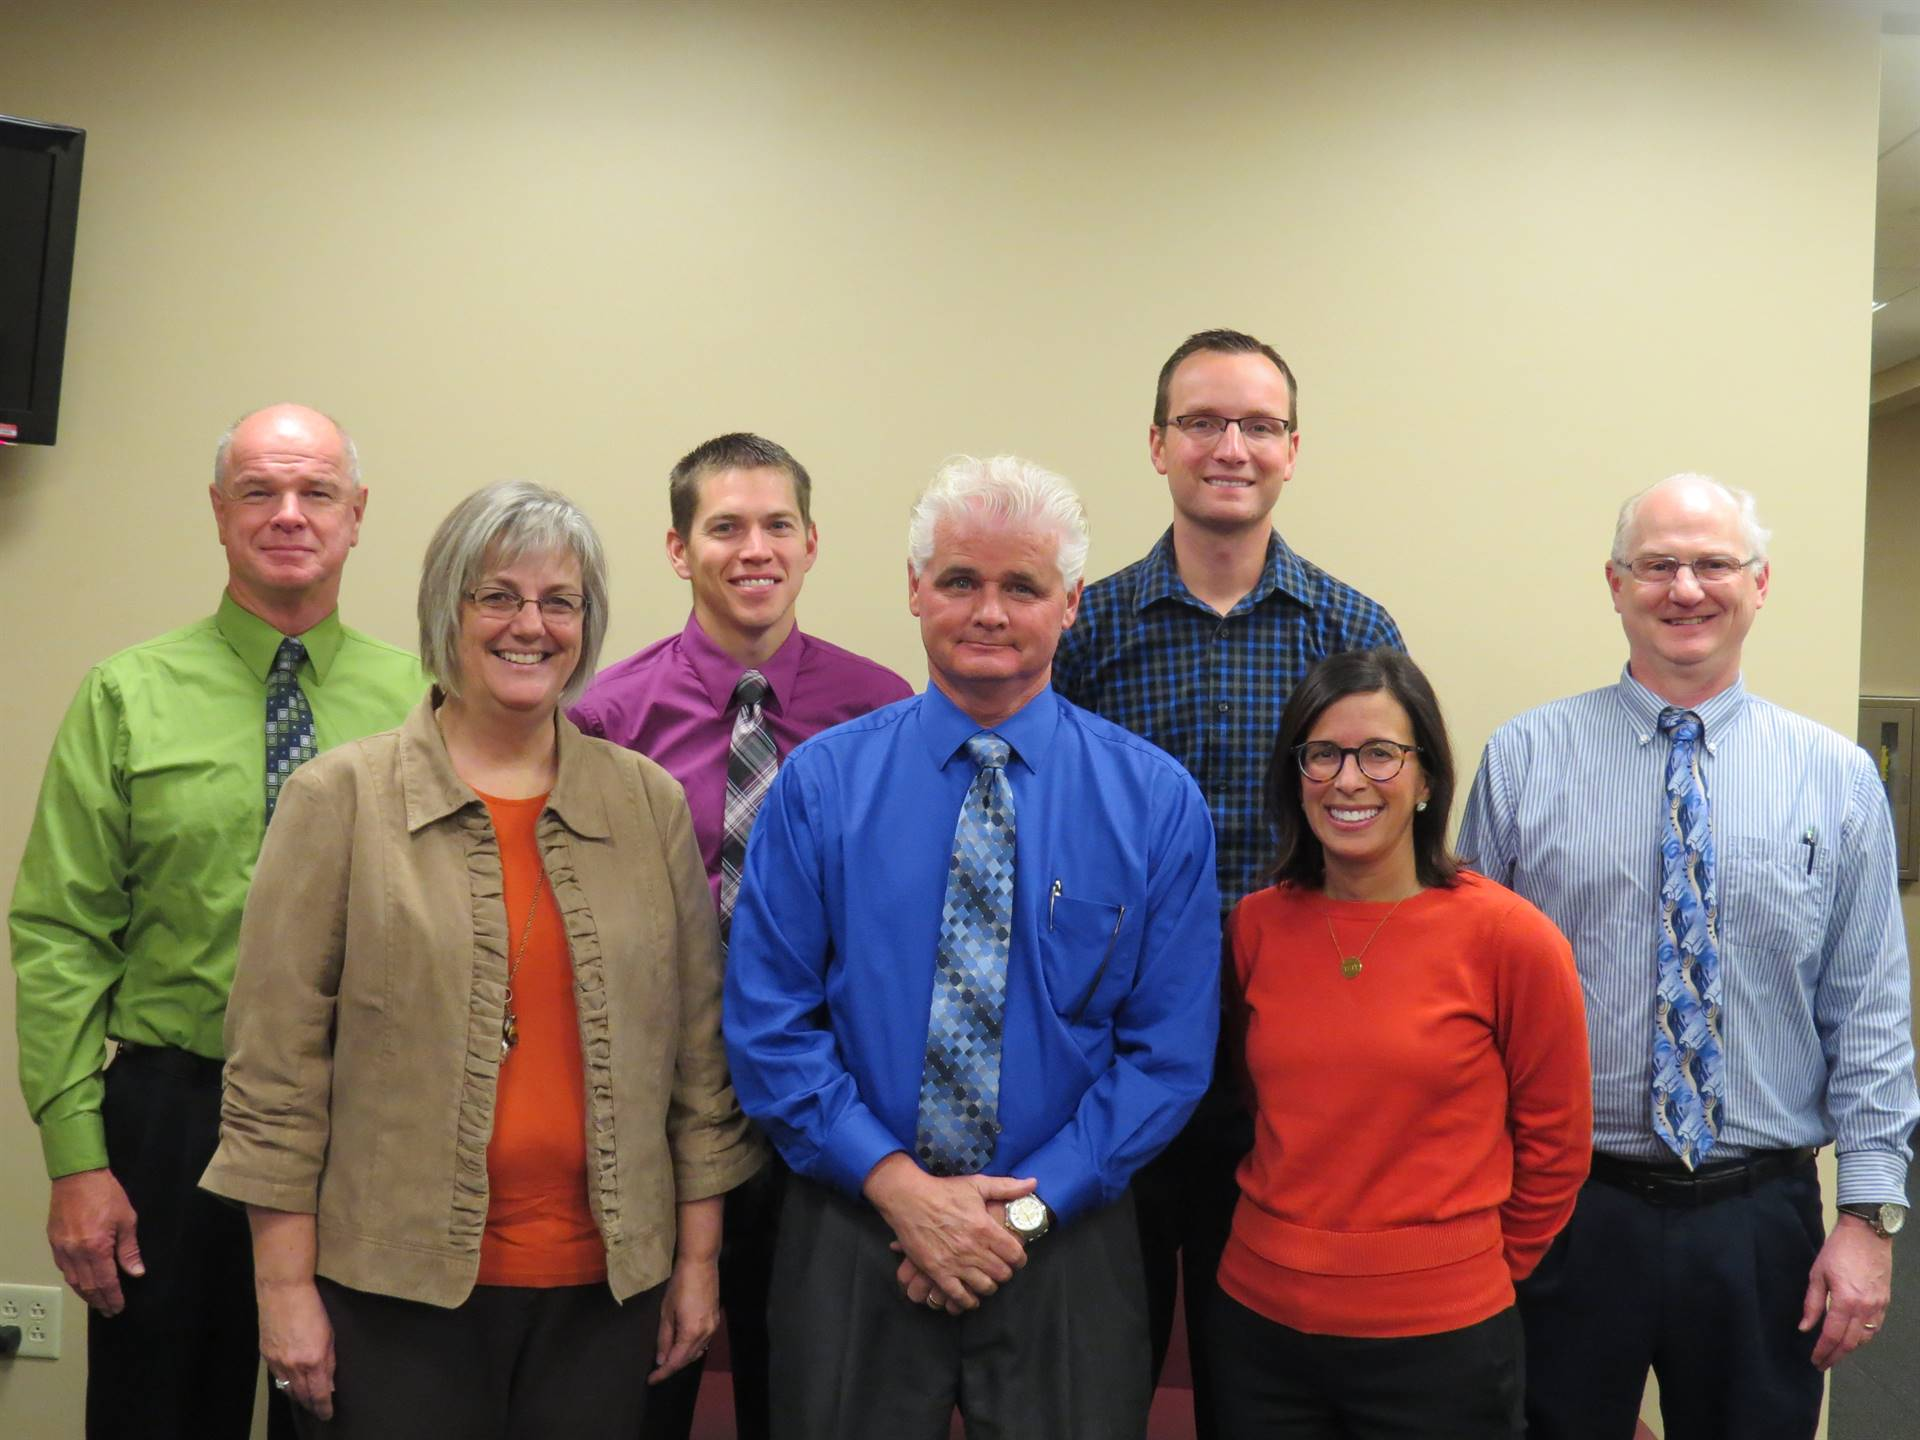 Seven male and female members of the Vantage Administrative team standing and smiling